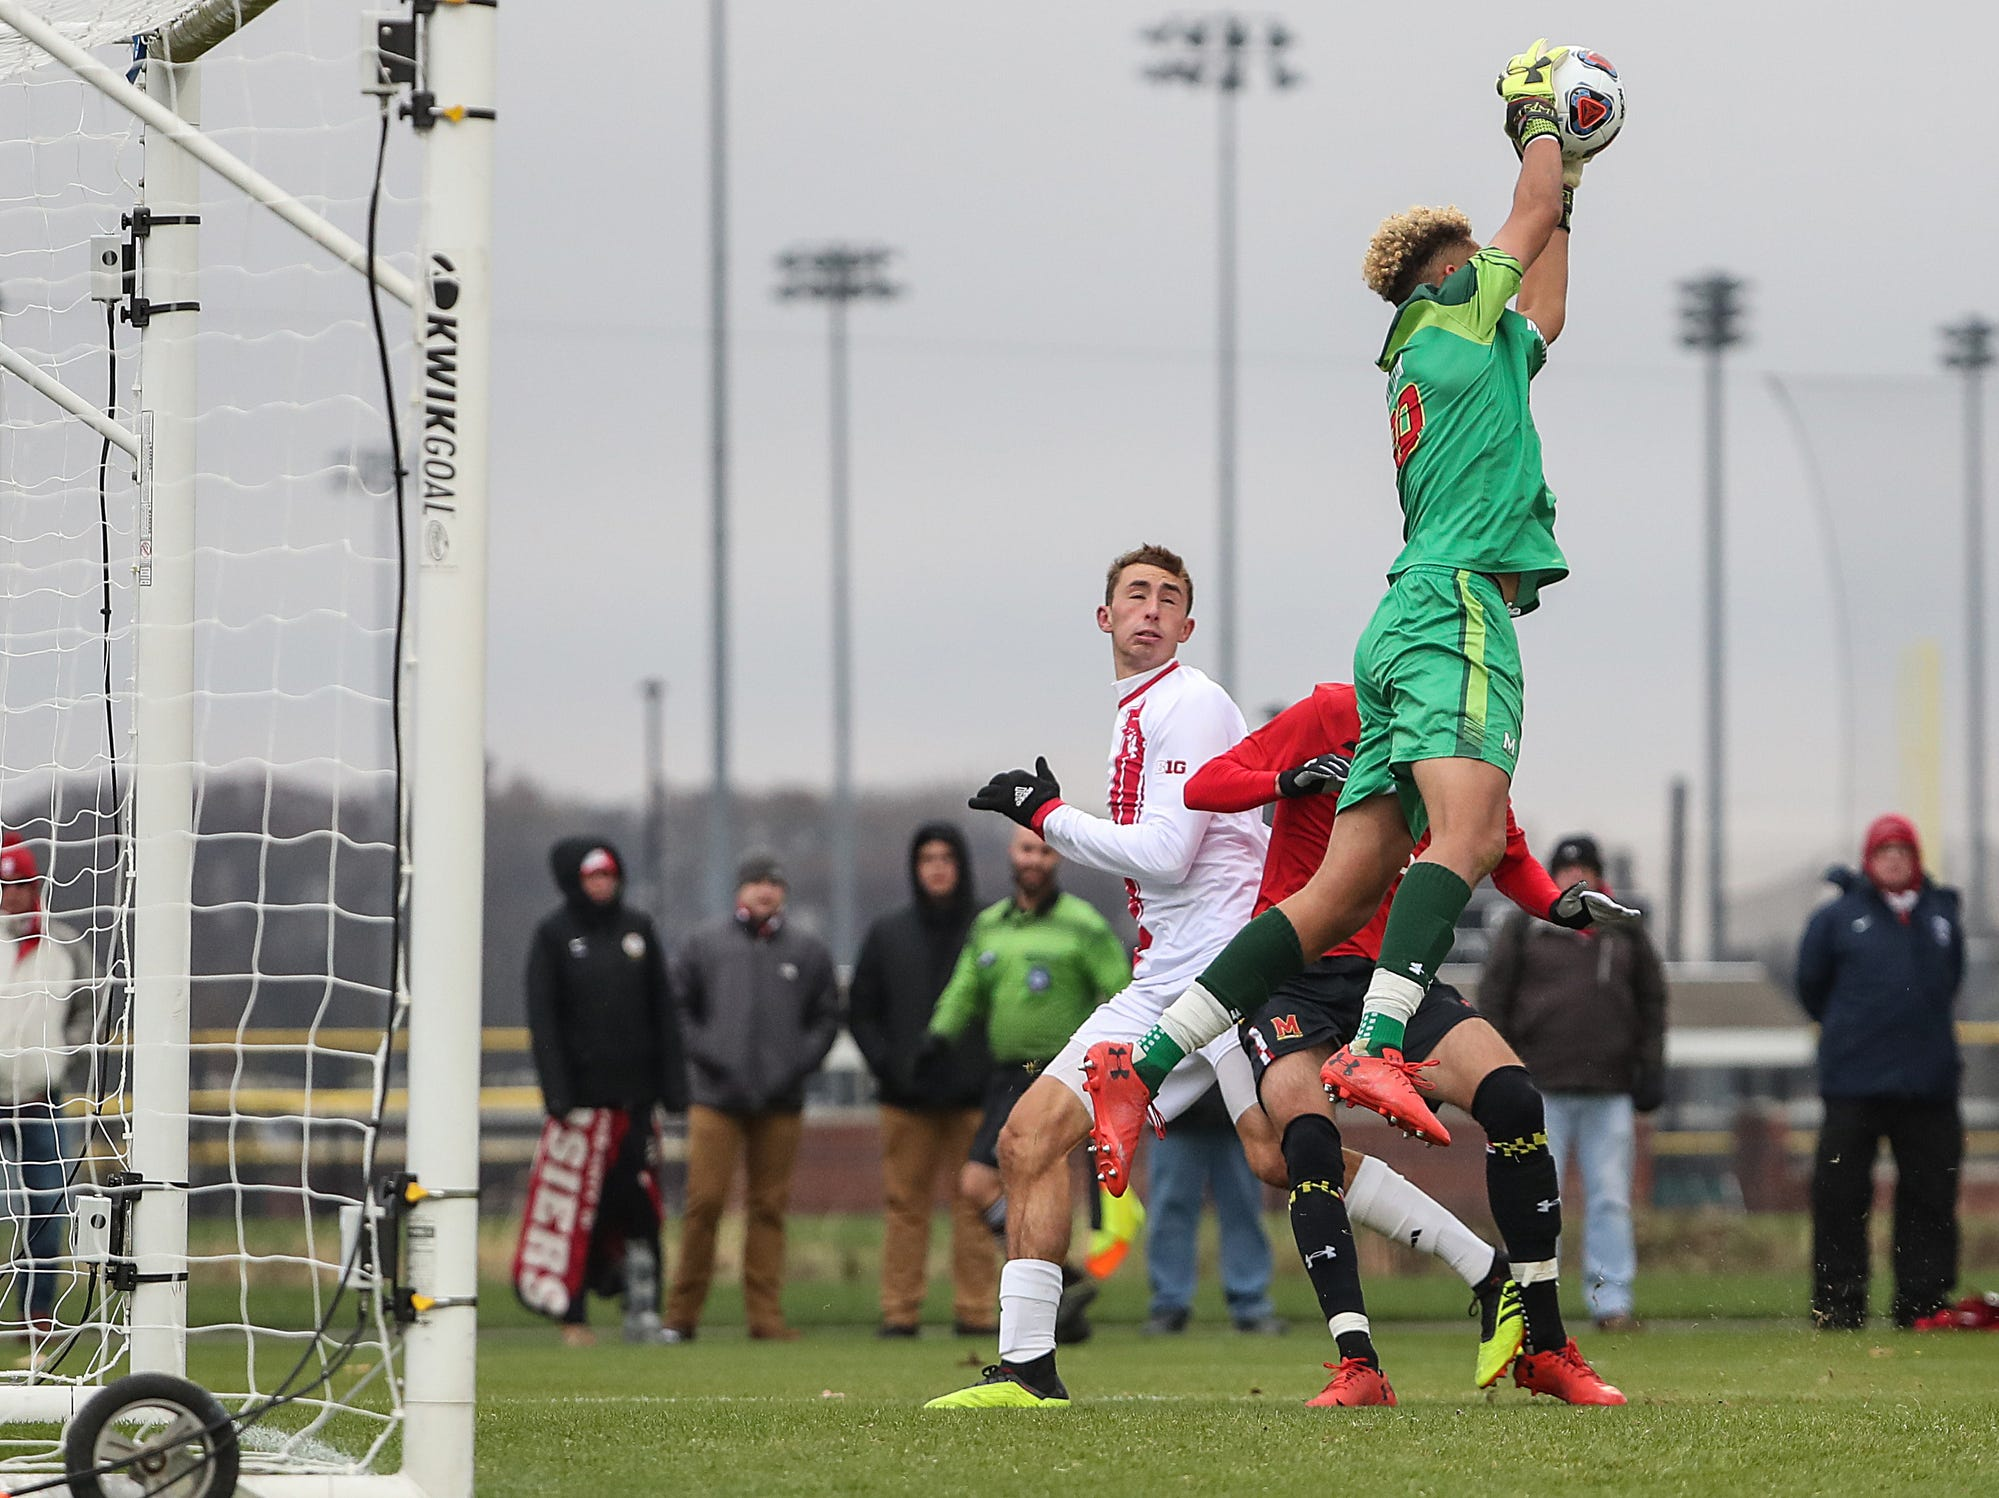 Maryland Terrapins goalkeeper Dayne St. Clair (99) stops a corner kick by the Hoosiers during the first half of Big Ten semifinals at Grand Park in Westfield, Ind., Friday, Nov. 9, 2018. Indiana and Maryland tied 1-1, with the Hoosiers advancing in penalty kicks, 4-3.